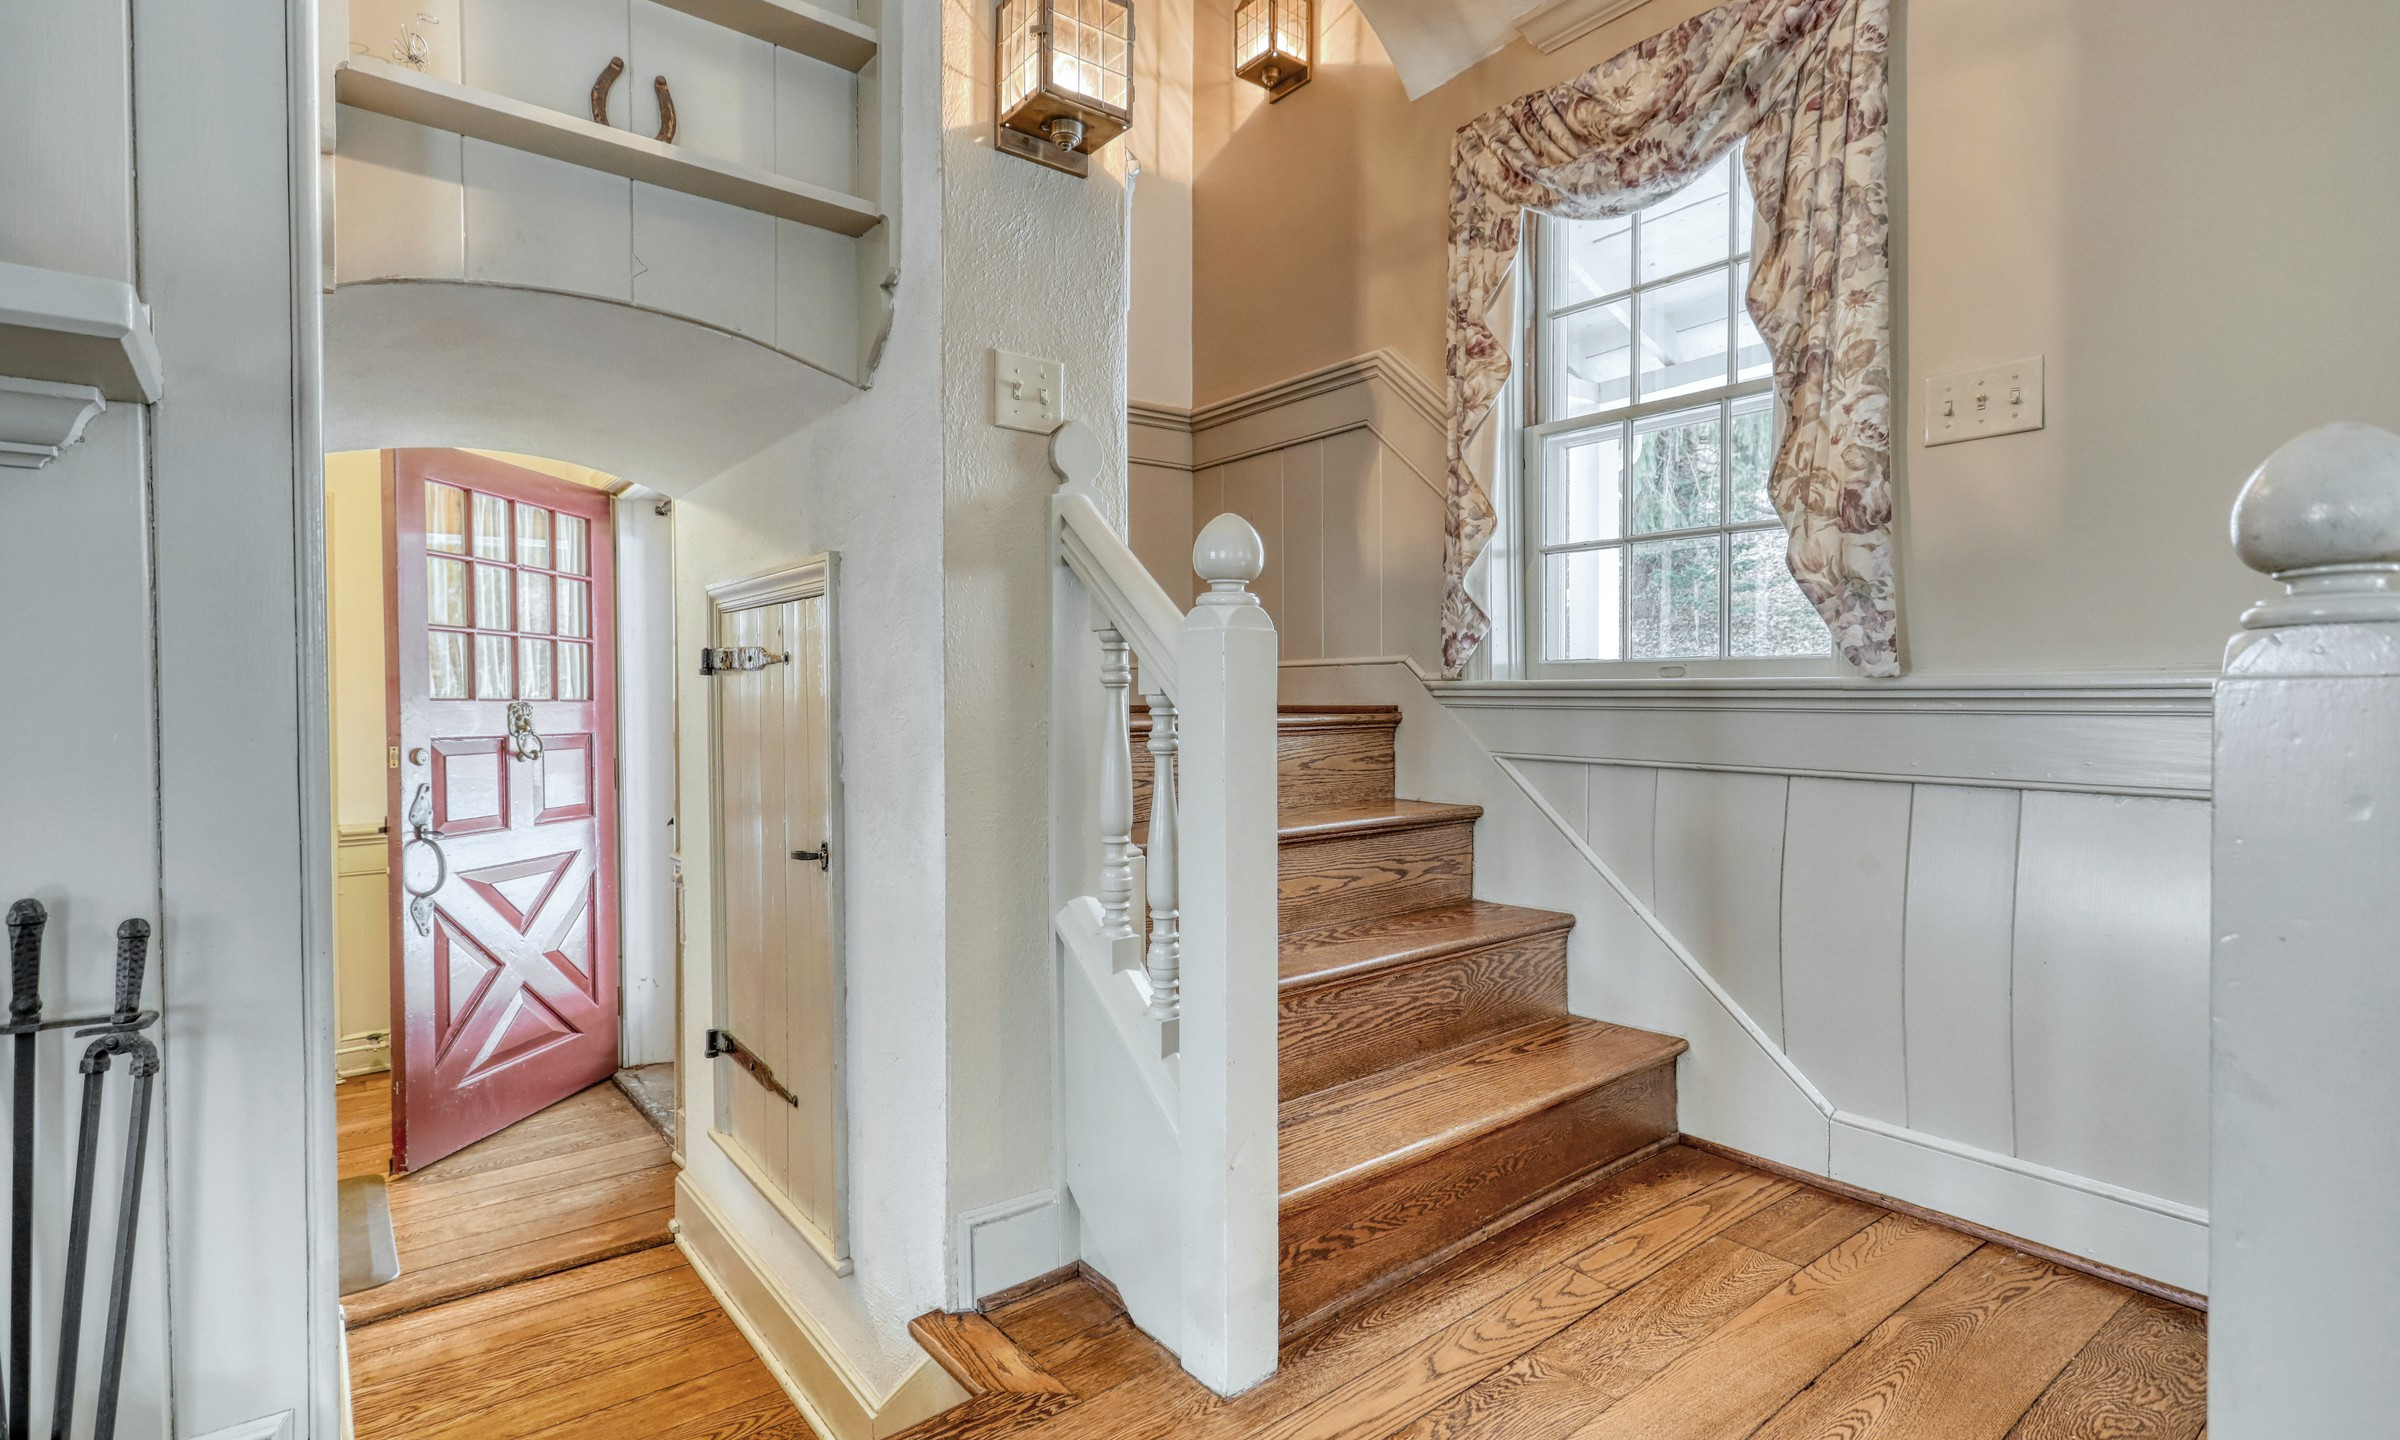 Real Estate Photographer in York, PA